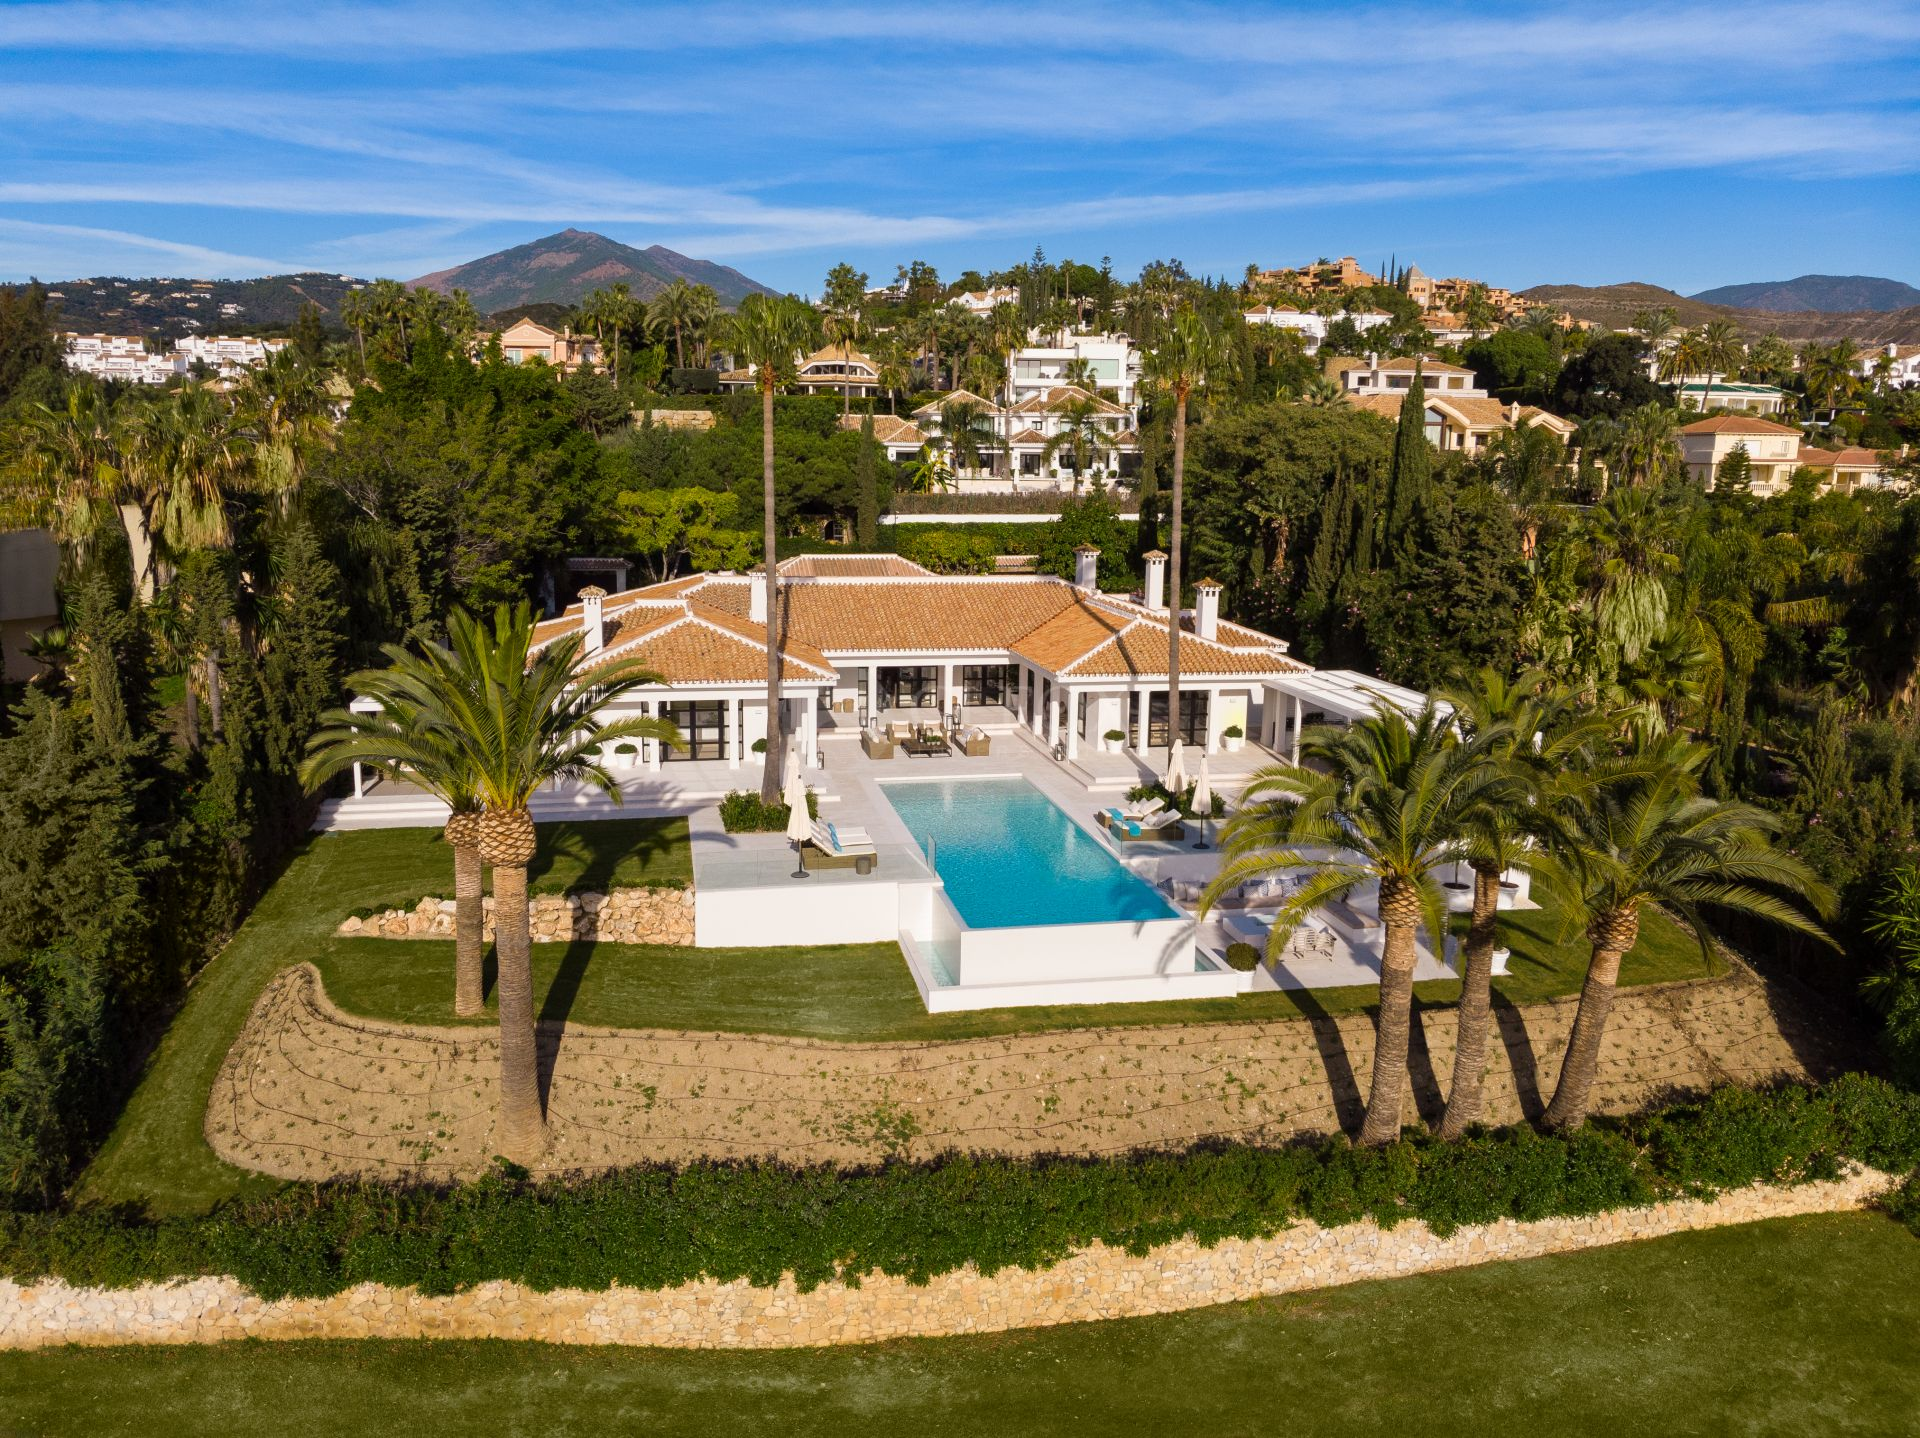 Mansion for sale in La Cerquilla, Nueva Andalucia, Marbella